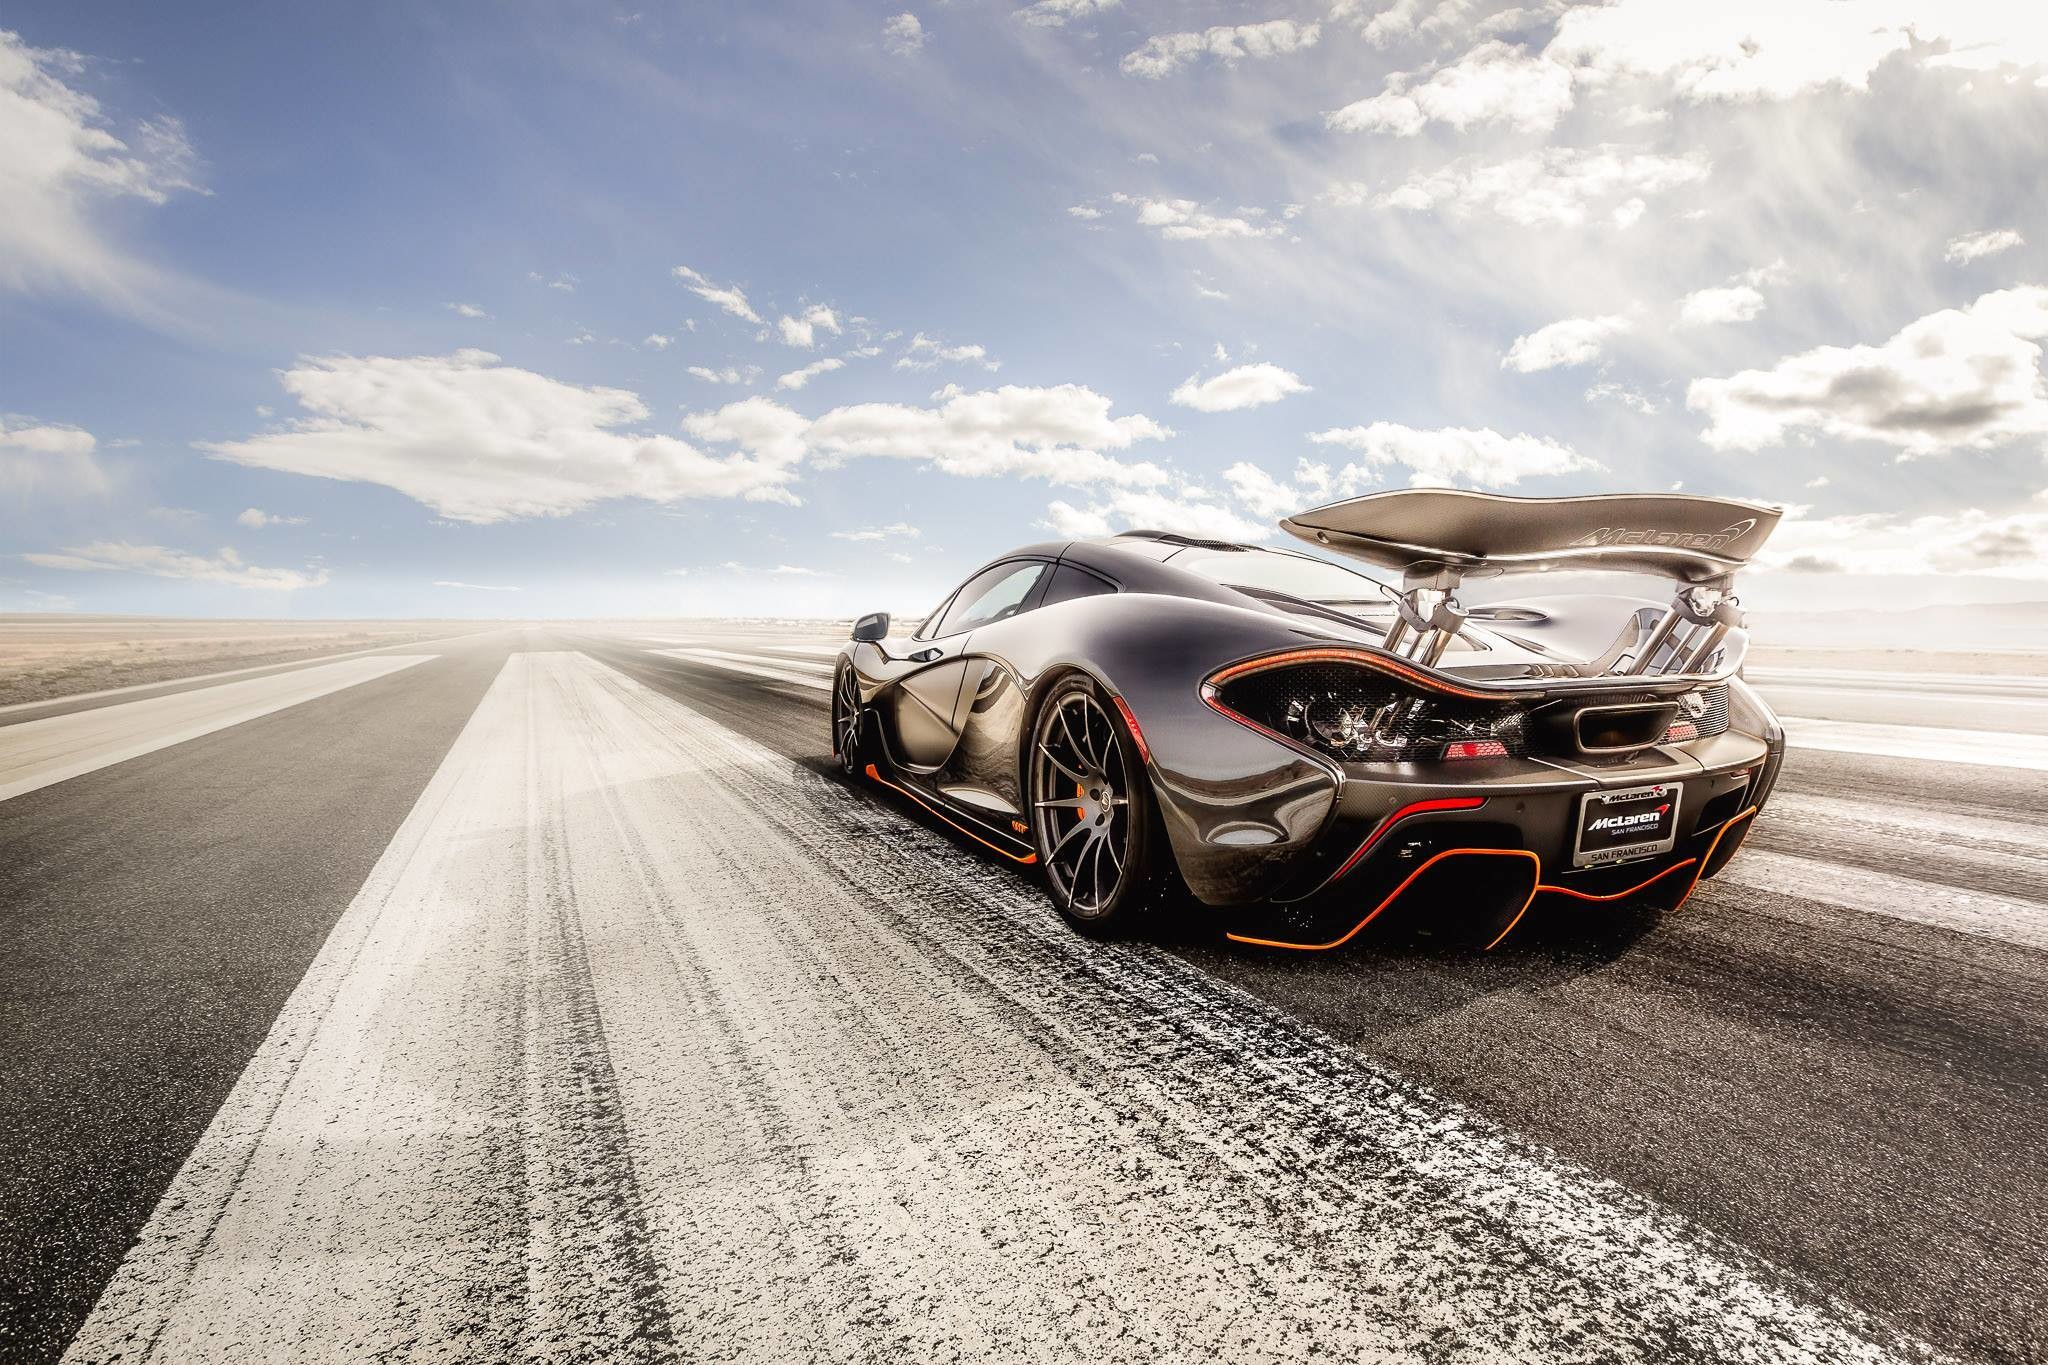 Res: 2048x1365, Is this the best looking car in the world? It certainly makes a strong  argument: